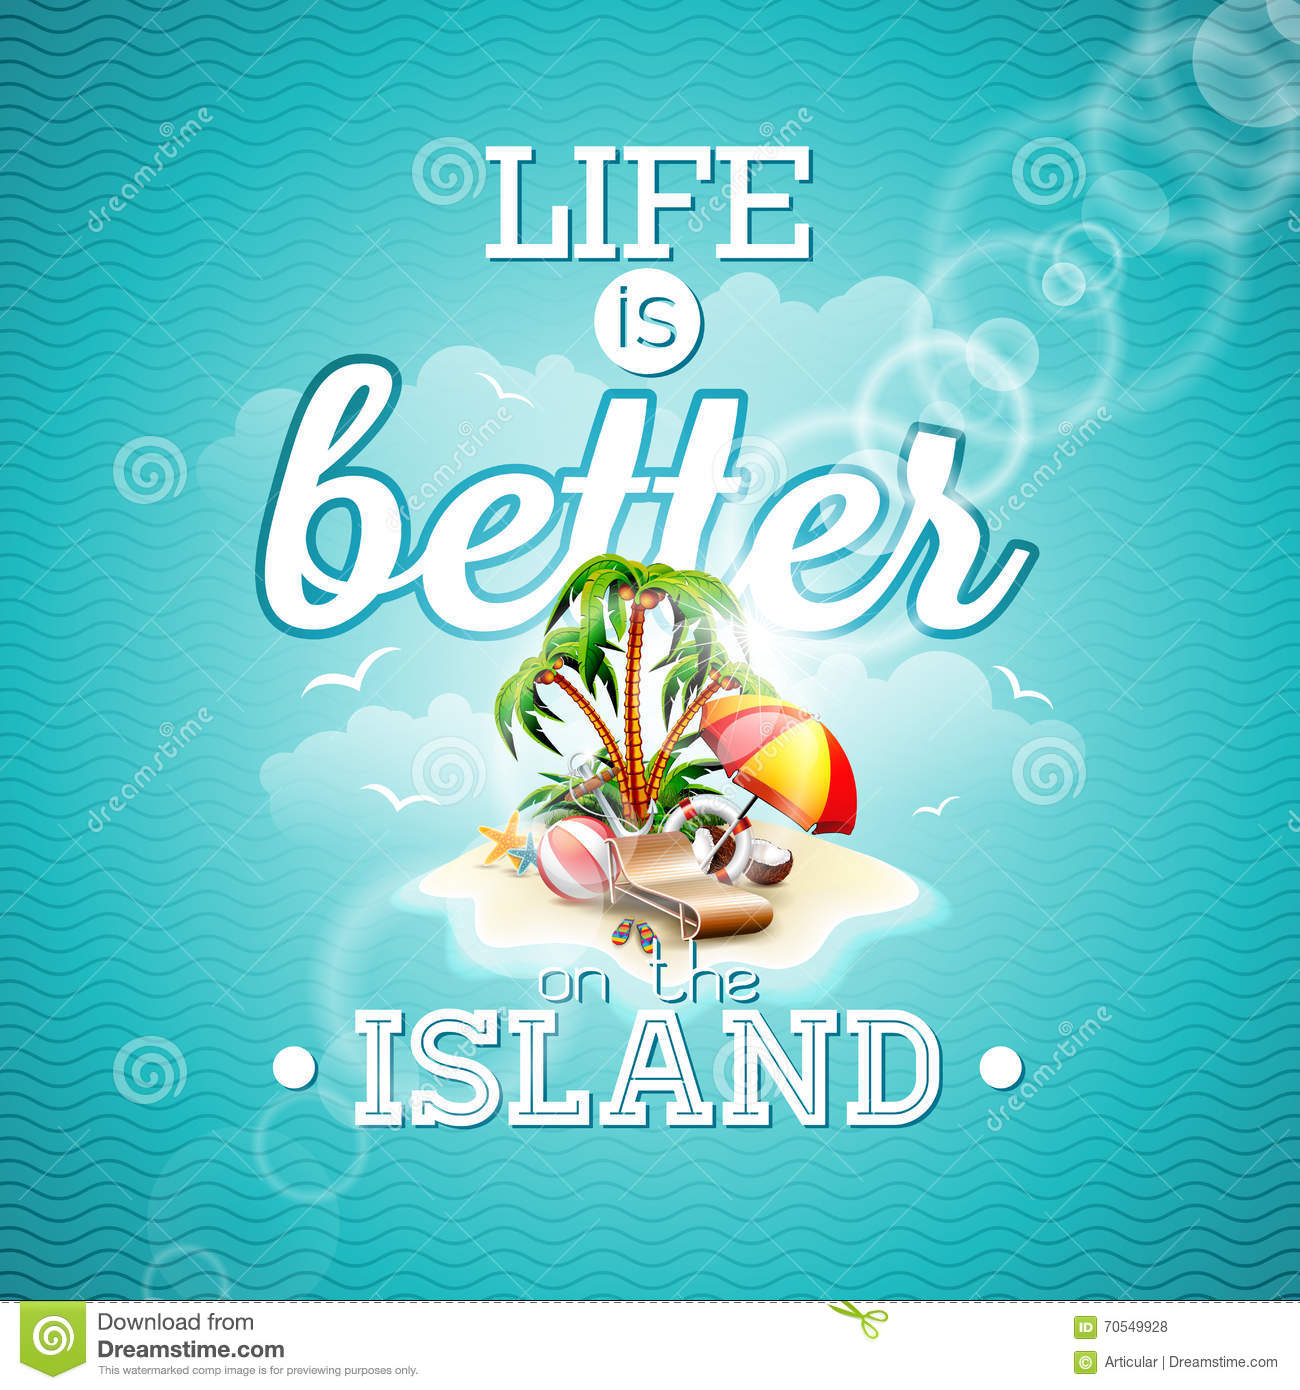 Life is better on the island inspiration quote with paradise island life is better on the island inspiration quote with paradise island vector typography design element for greeting cards and poste kristyandbryce Gallery